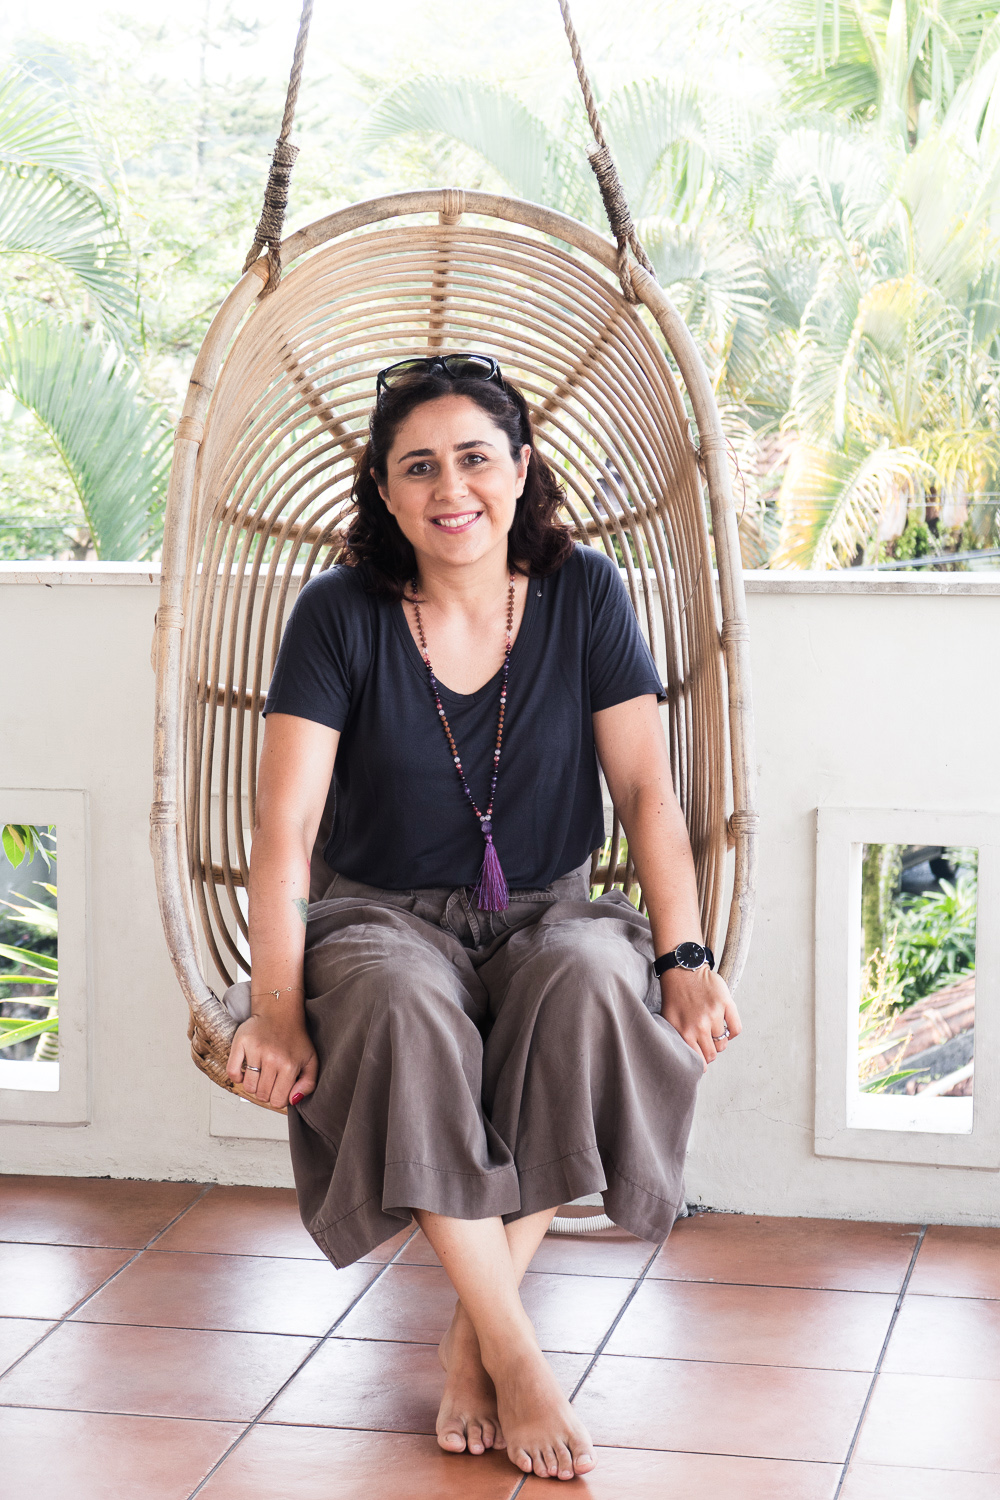 Giulia Mulè, Food and Travel Blogger at Mondomulia at Outpost Ubud co-working in Bali